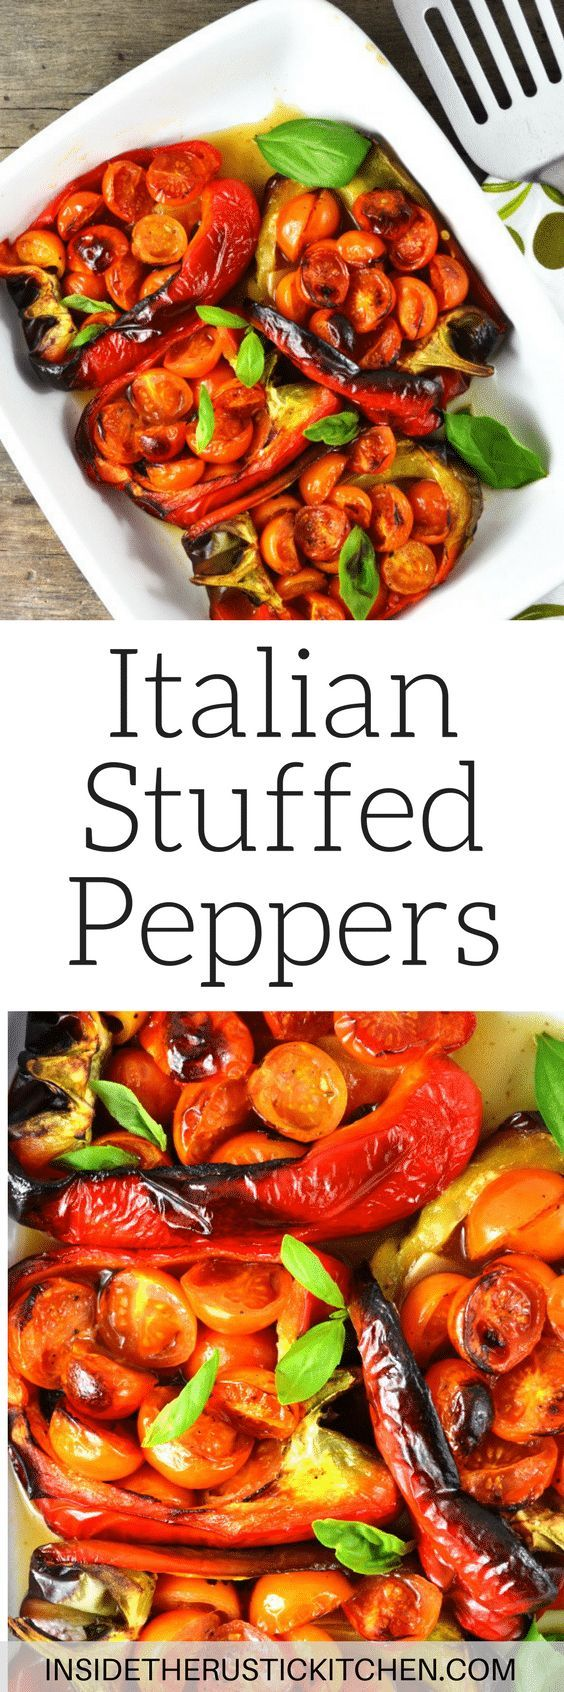 These delicious Italian stuffed peppers are stuffed with anchovies, garlic, basil and cherry tomatoes. A super easy and speedy lunch or dinner that you'll love!www.insidetherustickitchen.com